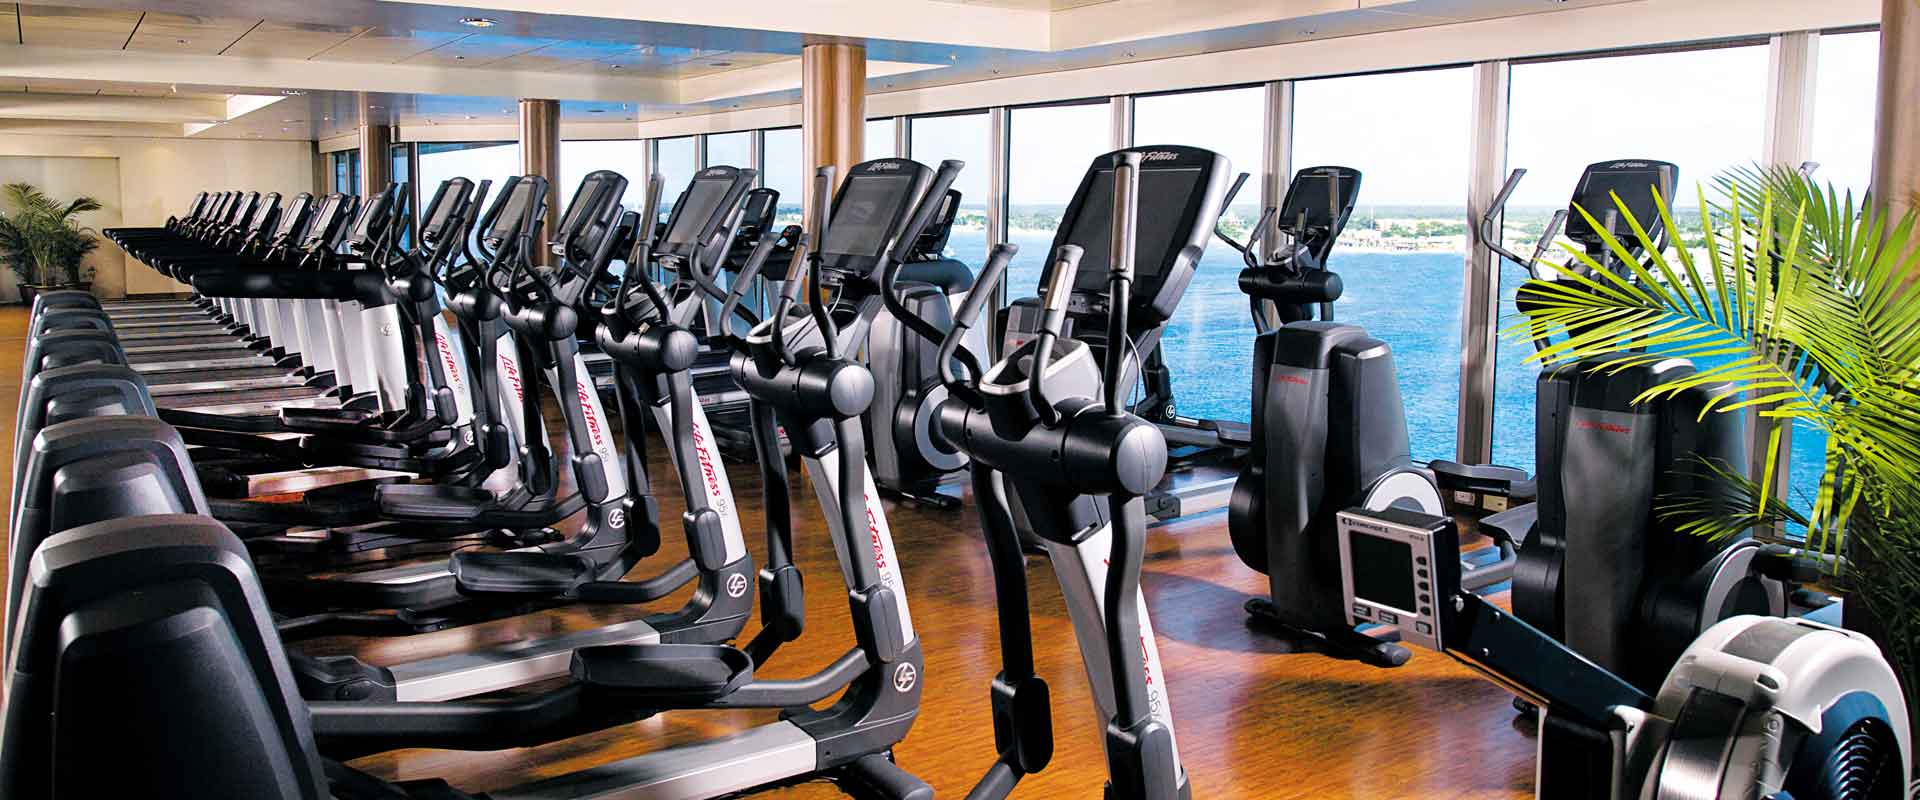 Gym and Fitness Equipment Leasing